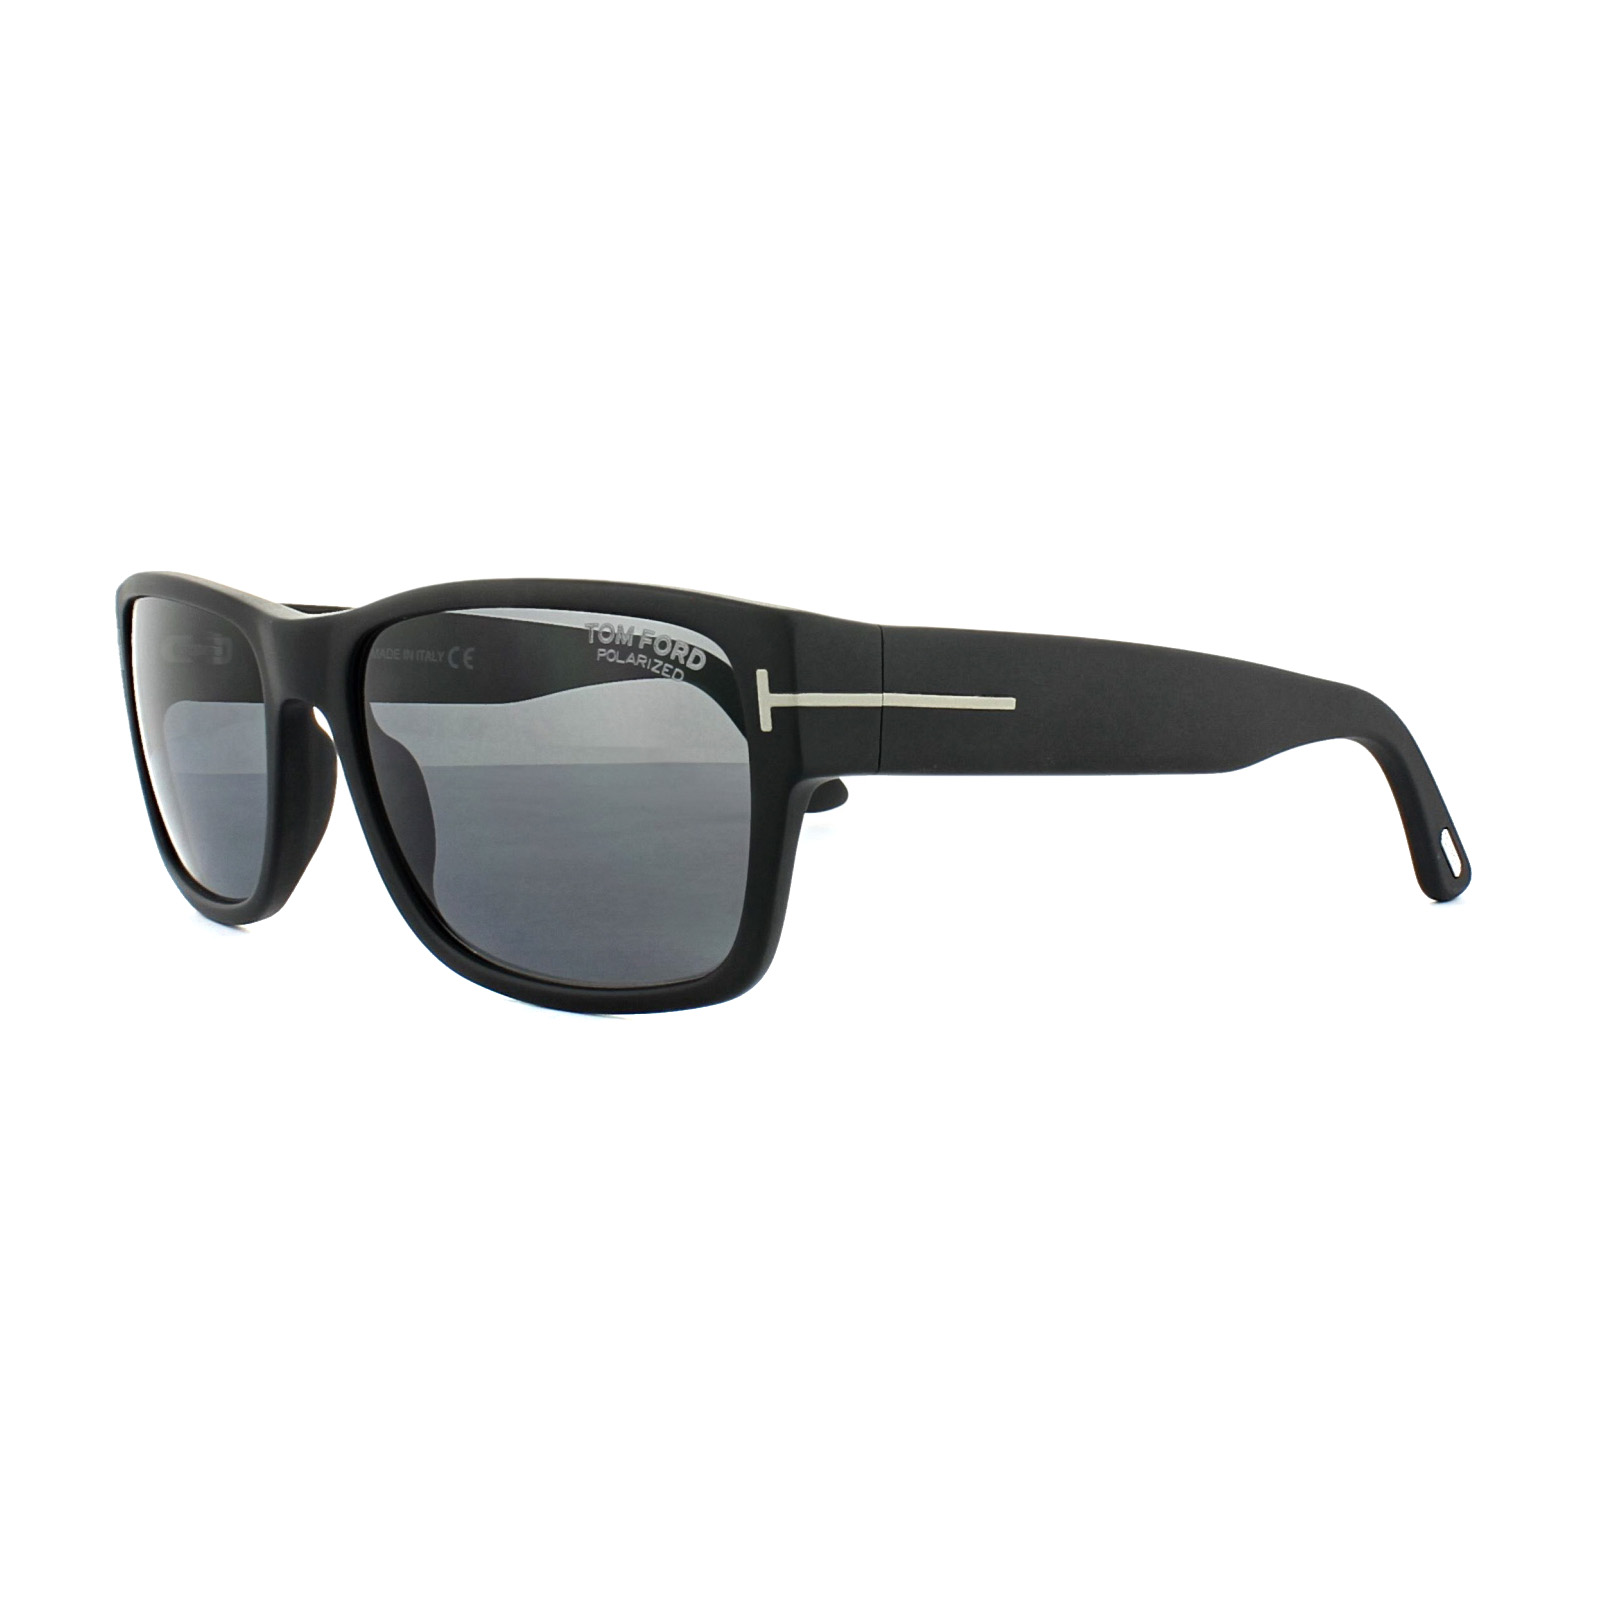 2dcdd149b716 Sentinel tom ford sunglasses mason matt black smoke grey polarized jpg  1600x1600 Mason tom ford